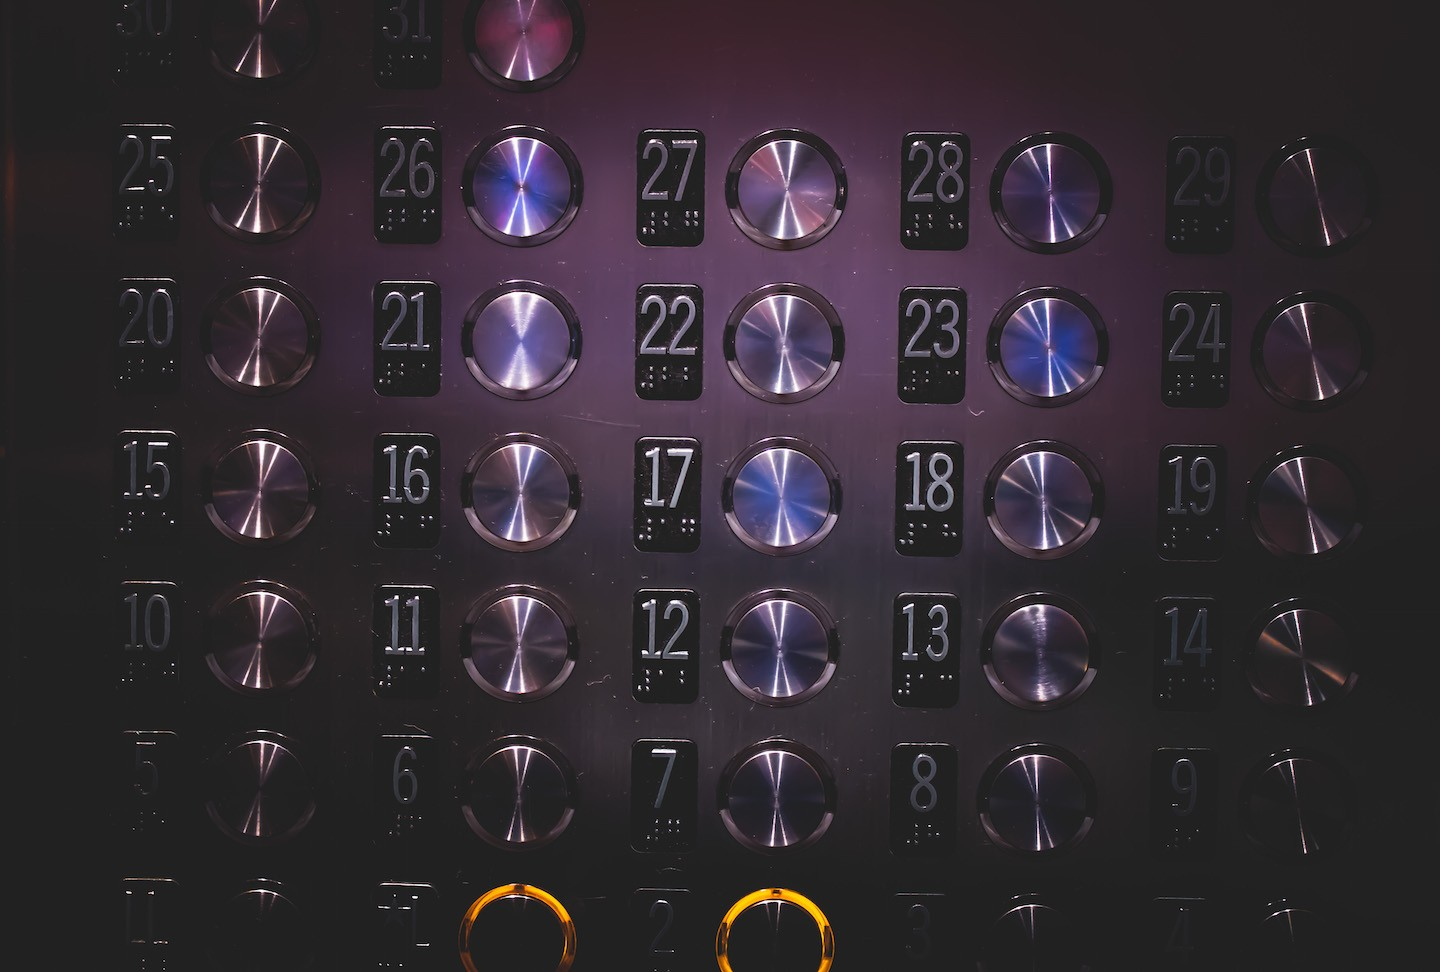 5 steps to writing an effective elevator pitch for your job search